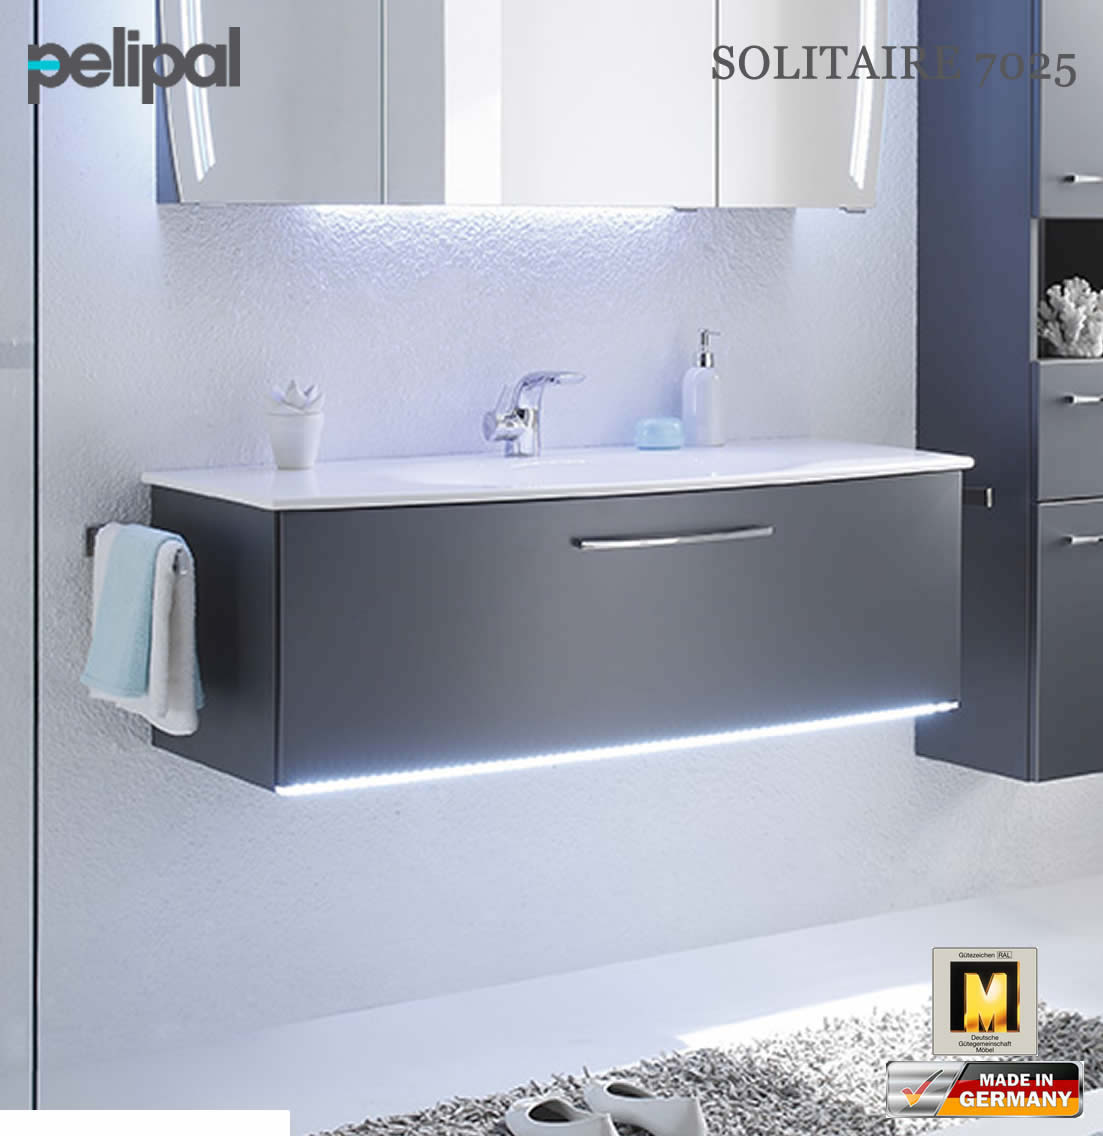 pelipal solitaire 7025 led waschtischunterschrank set mit. Black Bedroom Furniture Sets. Home Design Ideas